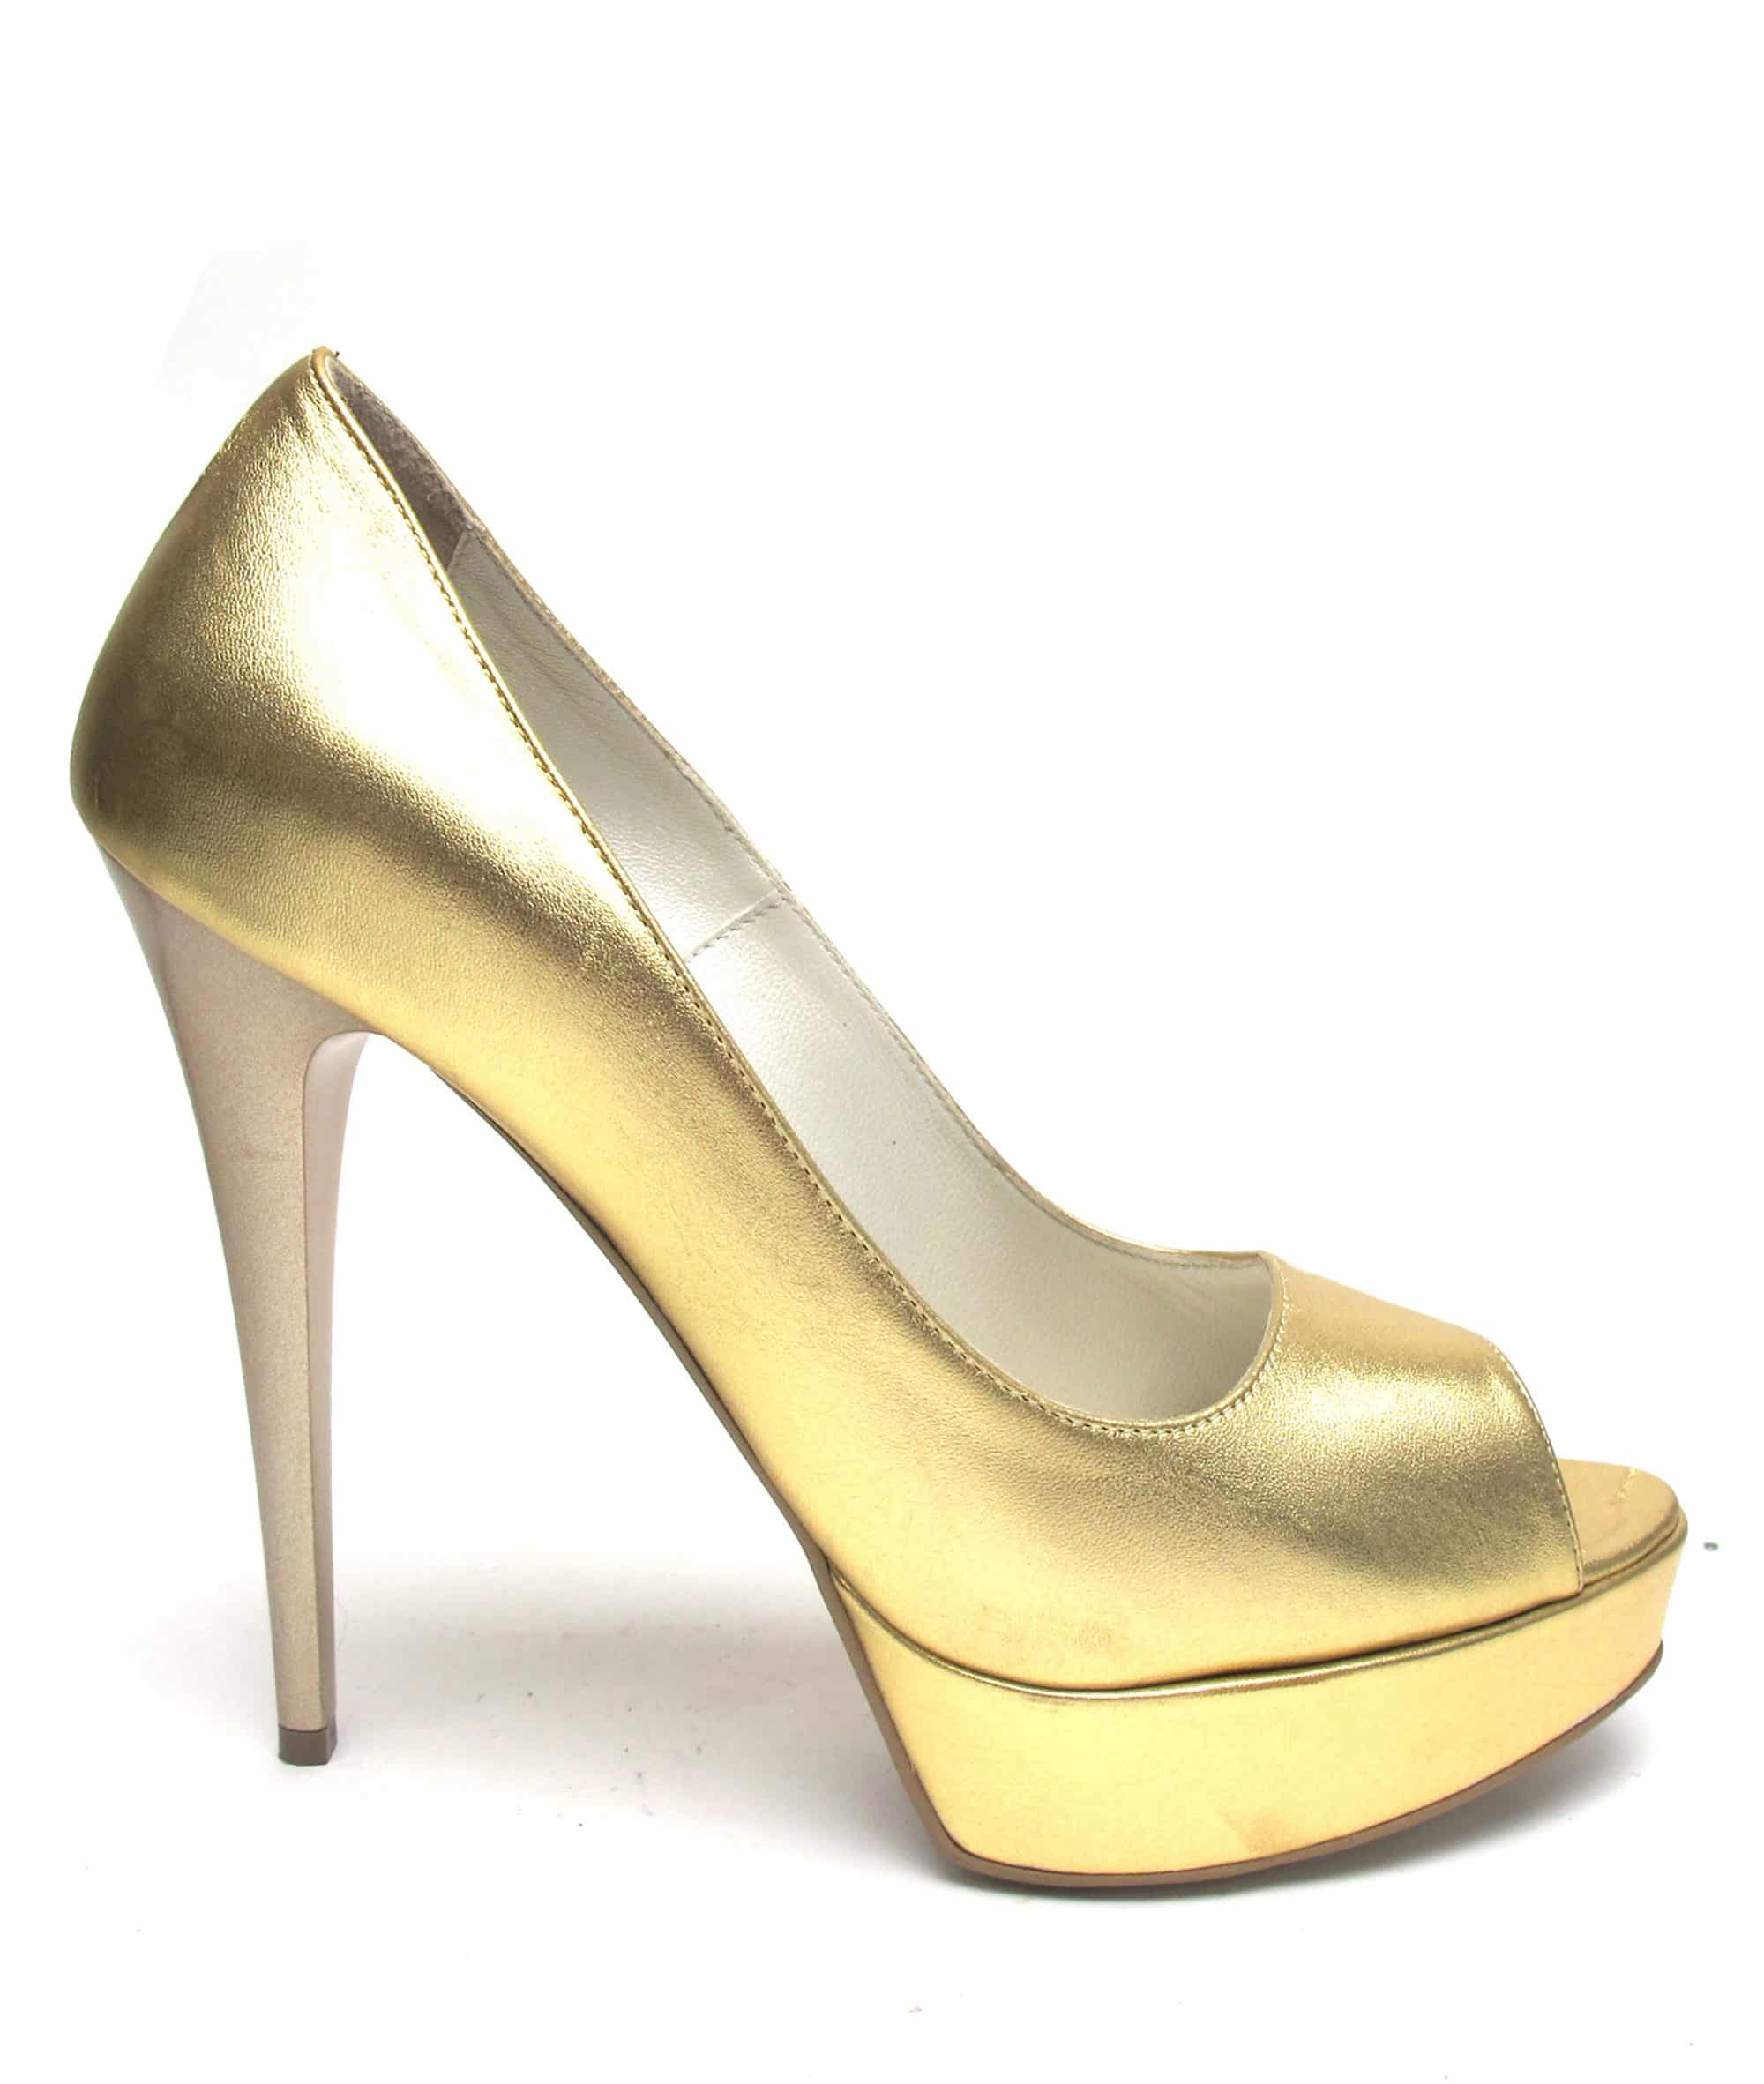 Veronesse Gold heels leather open toe heels